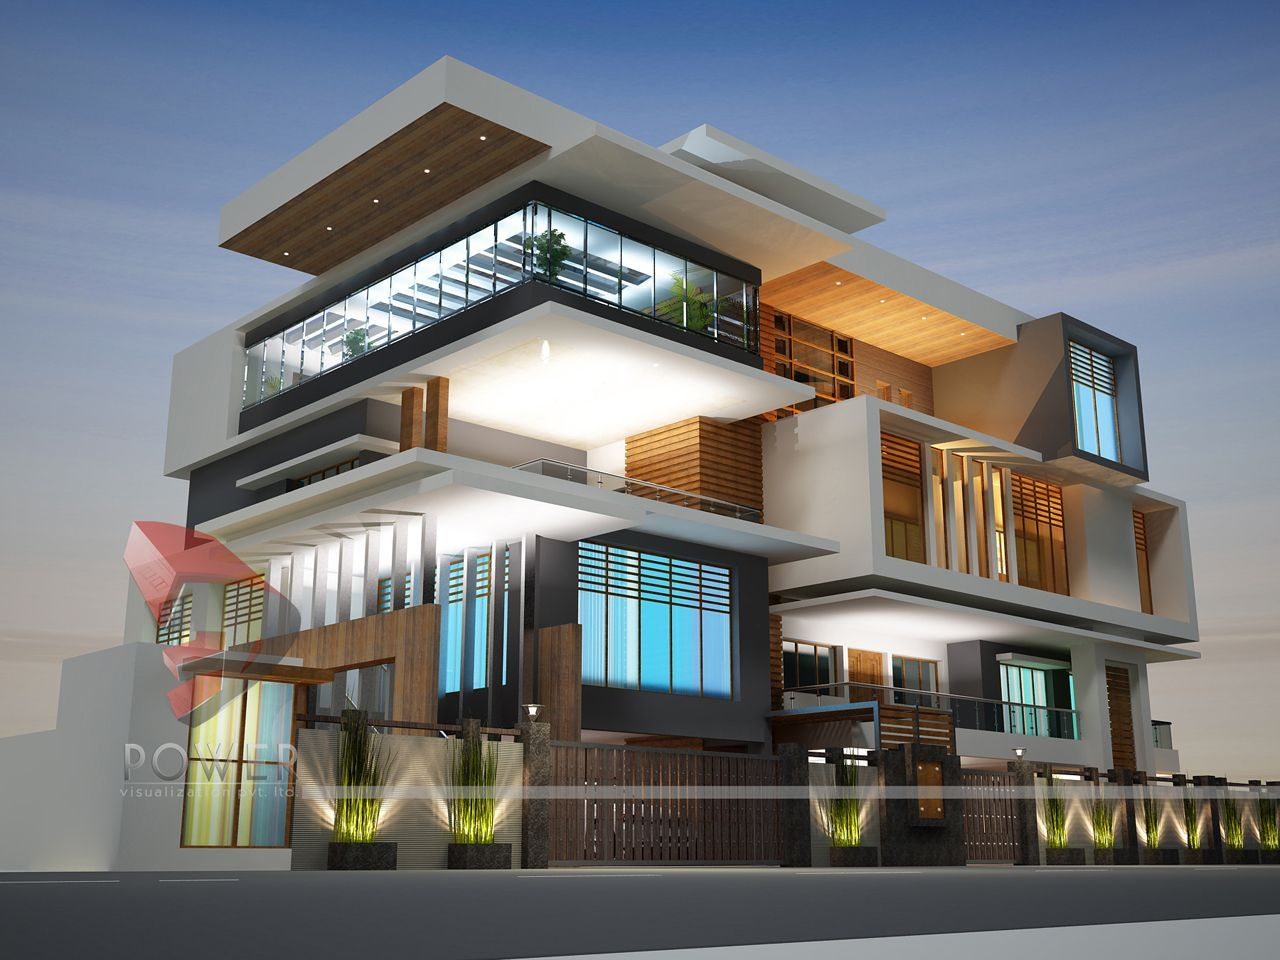 Modern house design in india architecture india modern for New architecture design house